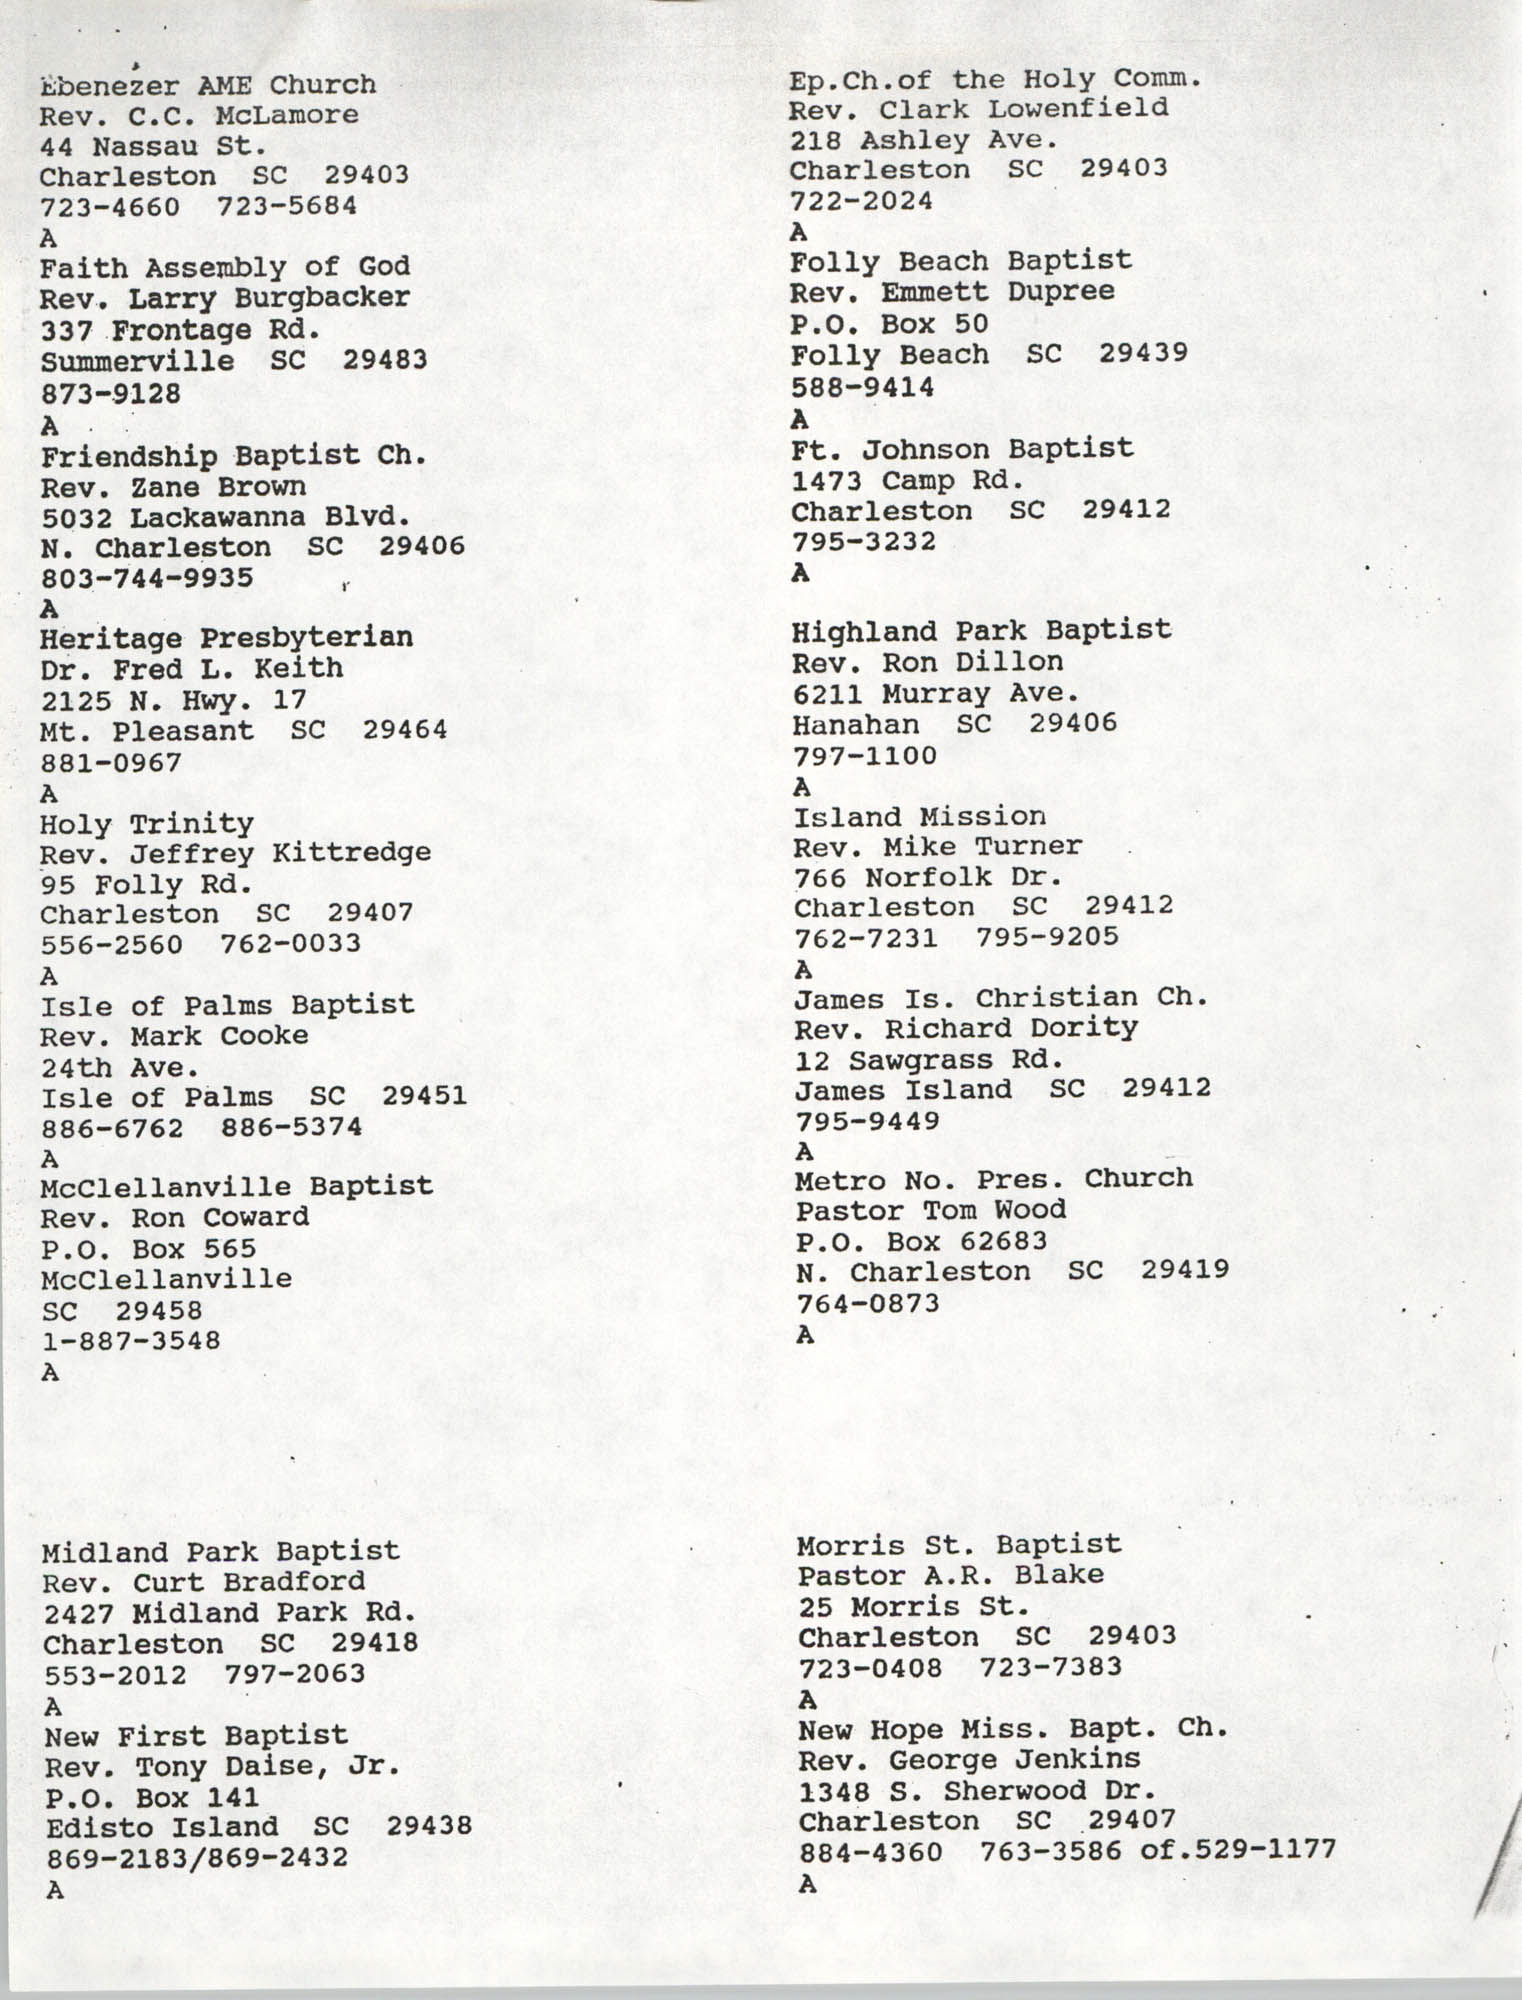 Church Contact List, Charleston Chapter of the NAACP, Page 2